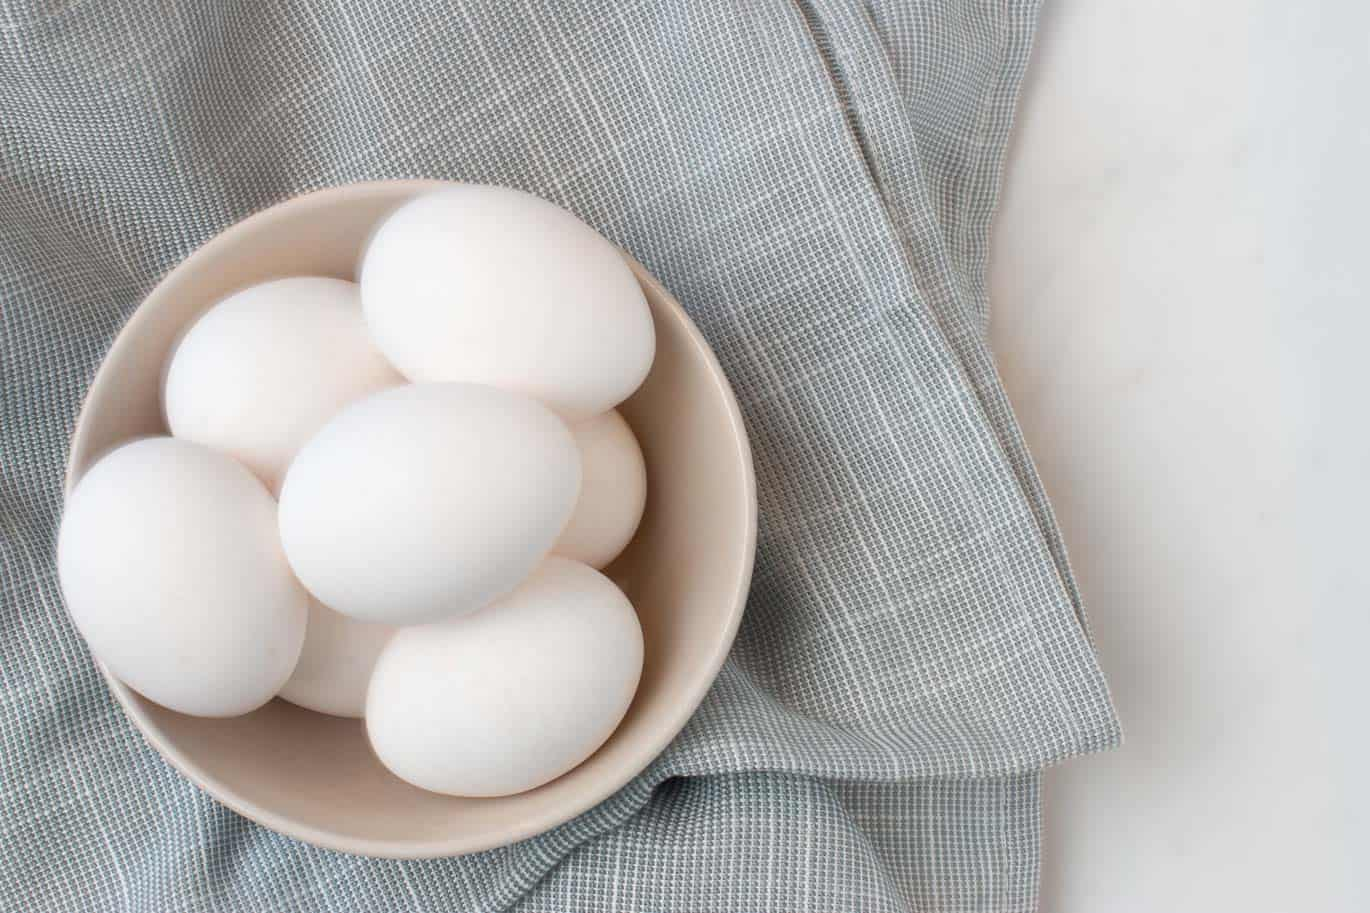 Can you freeze eggs? YES you can! Here is a post on how to properly freeze eggs to use later.